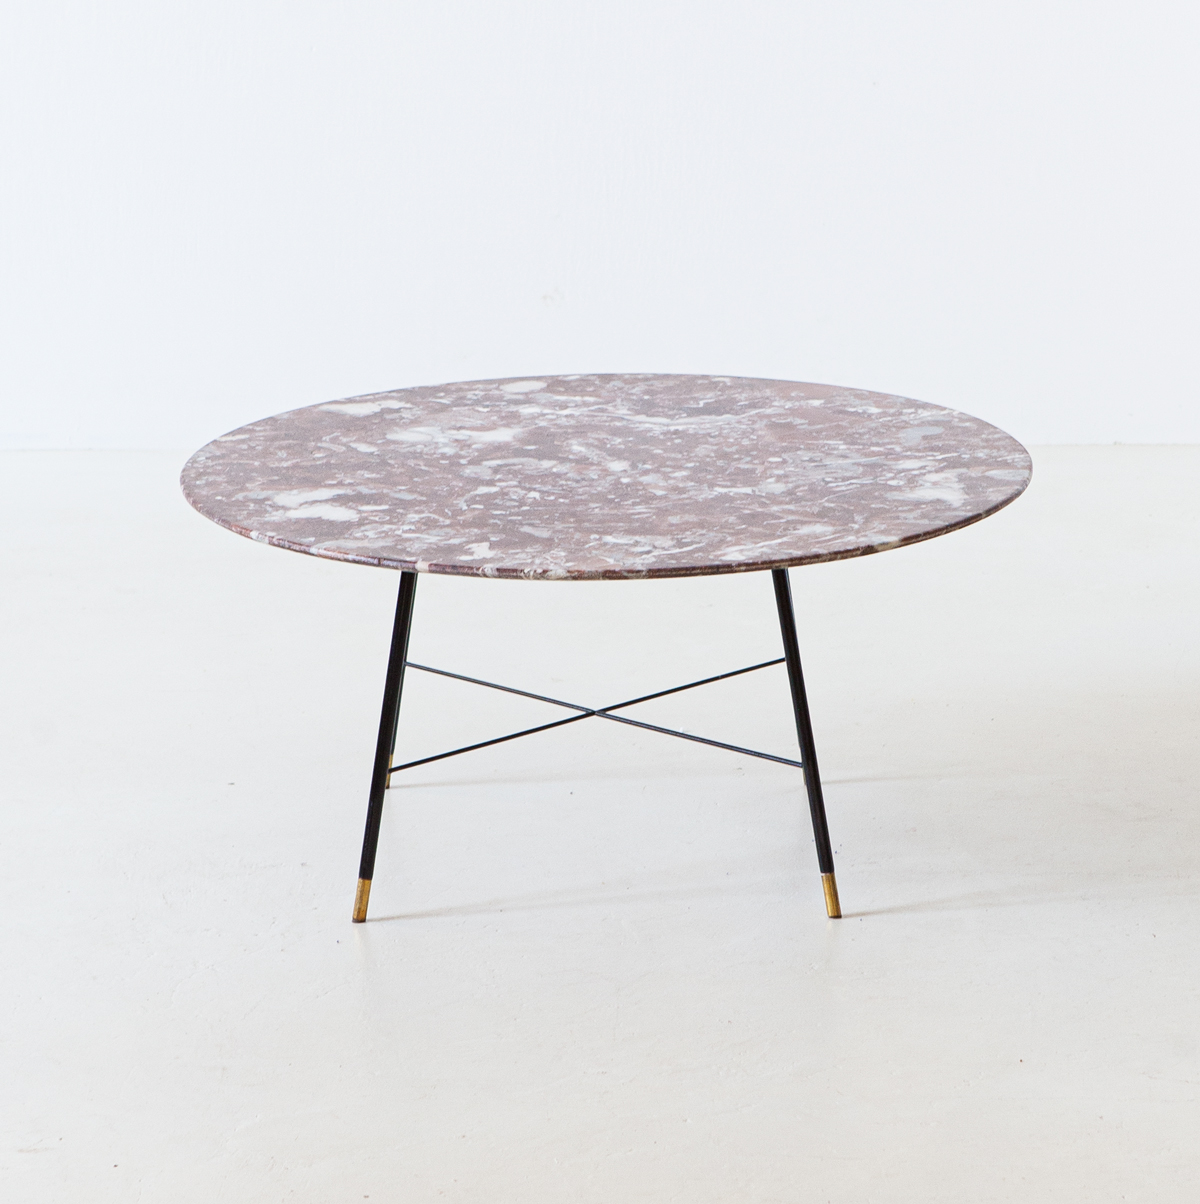 1950s-italian-marble-top-round-low-table-1-t85